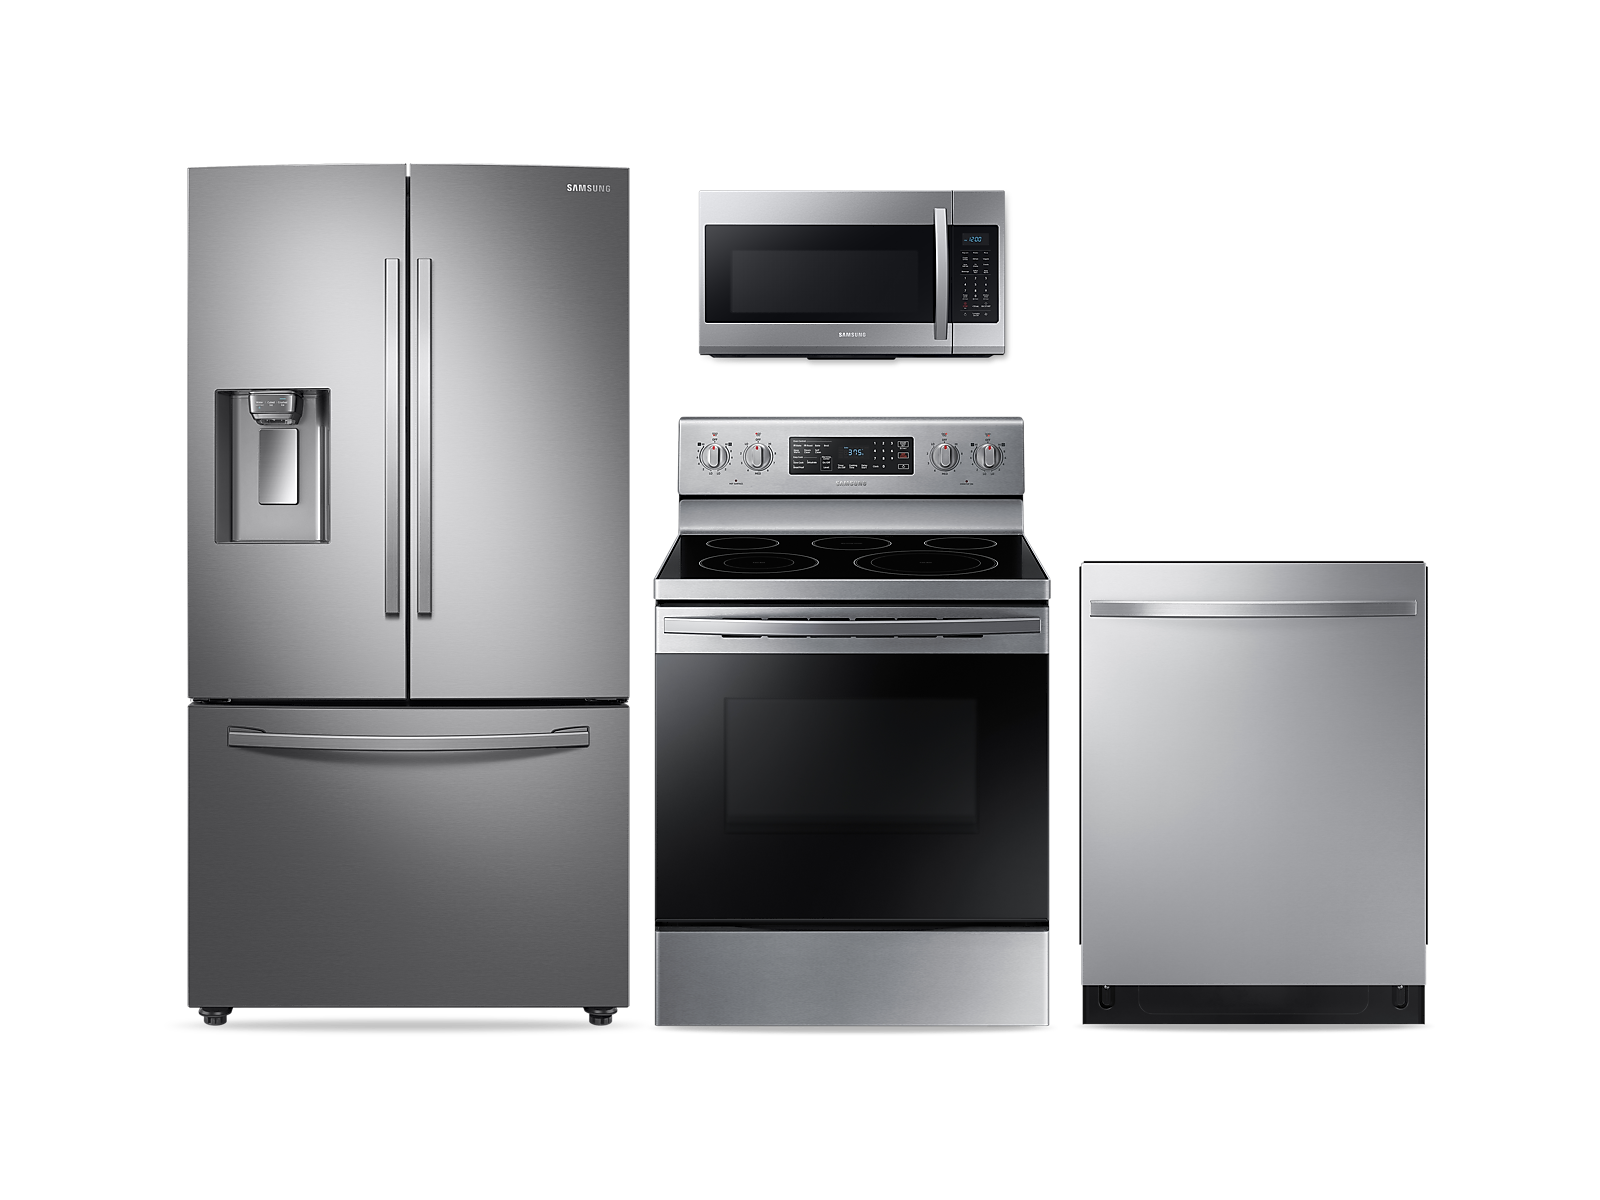 Samsung coupon: Samsung Large Capacity 3-door Refrigerator + Electric Range + StormWash Dishwasher + Microwave Kitchen Package in Stainless Steel